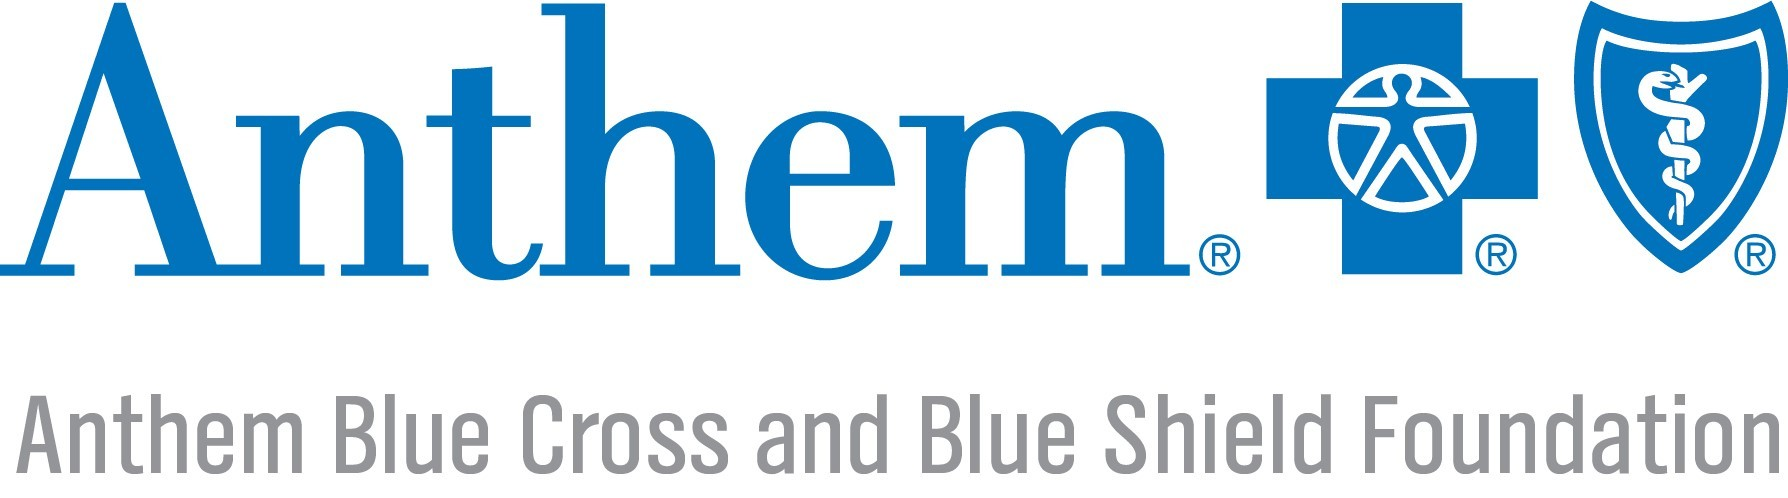 Anthem Blue Cross and Blue Shield and its Foundation ...